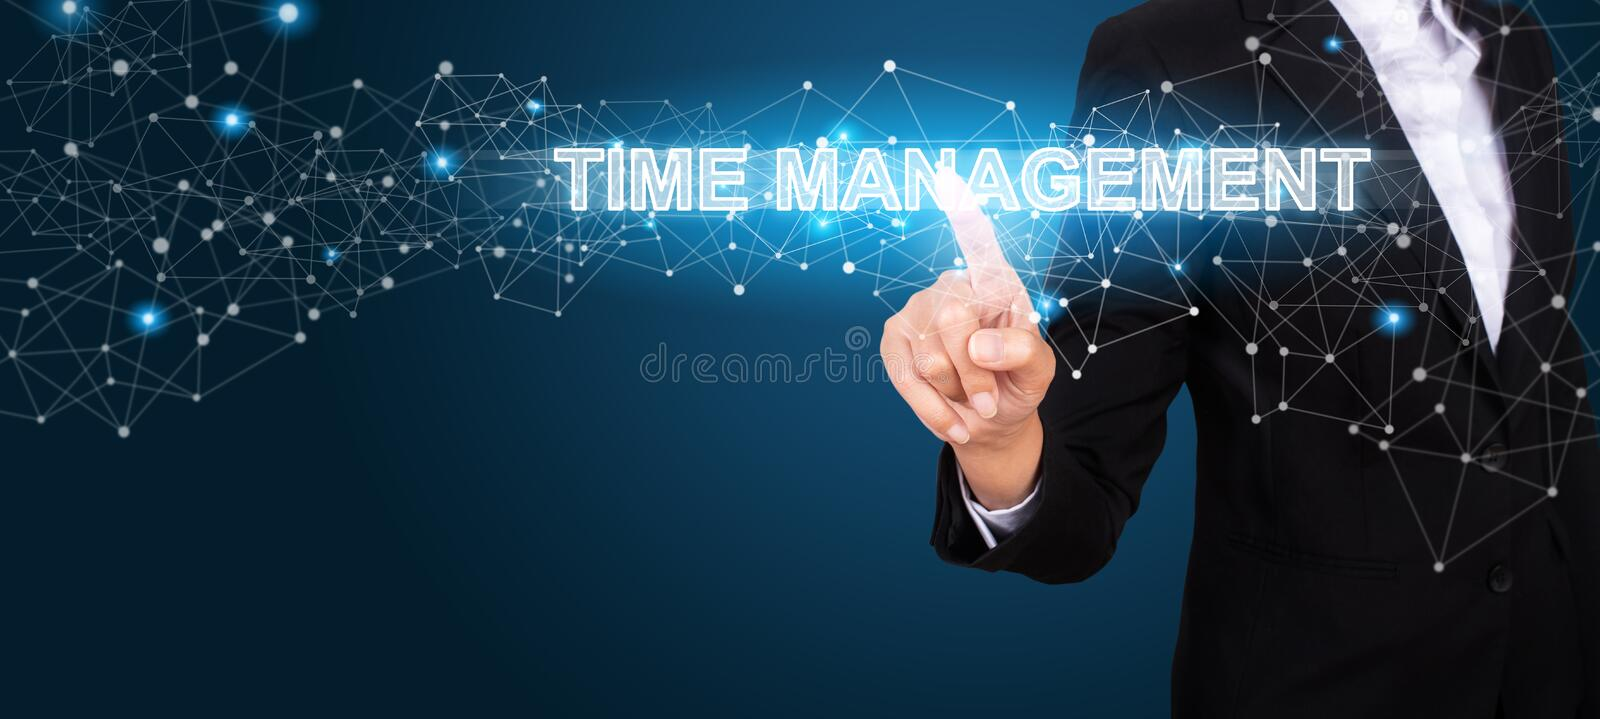 Time Management concept with Hand of business pressing a button royalty free stock photography